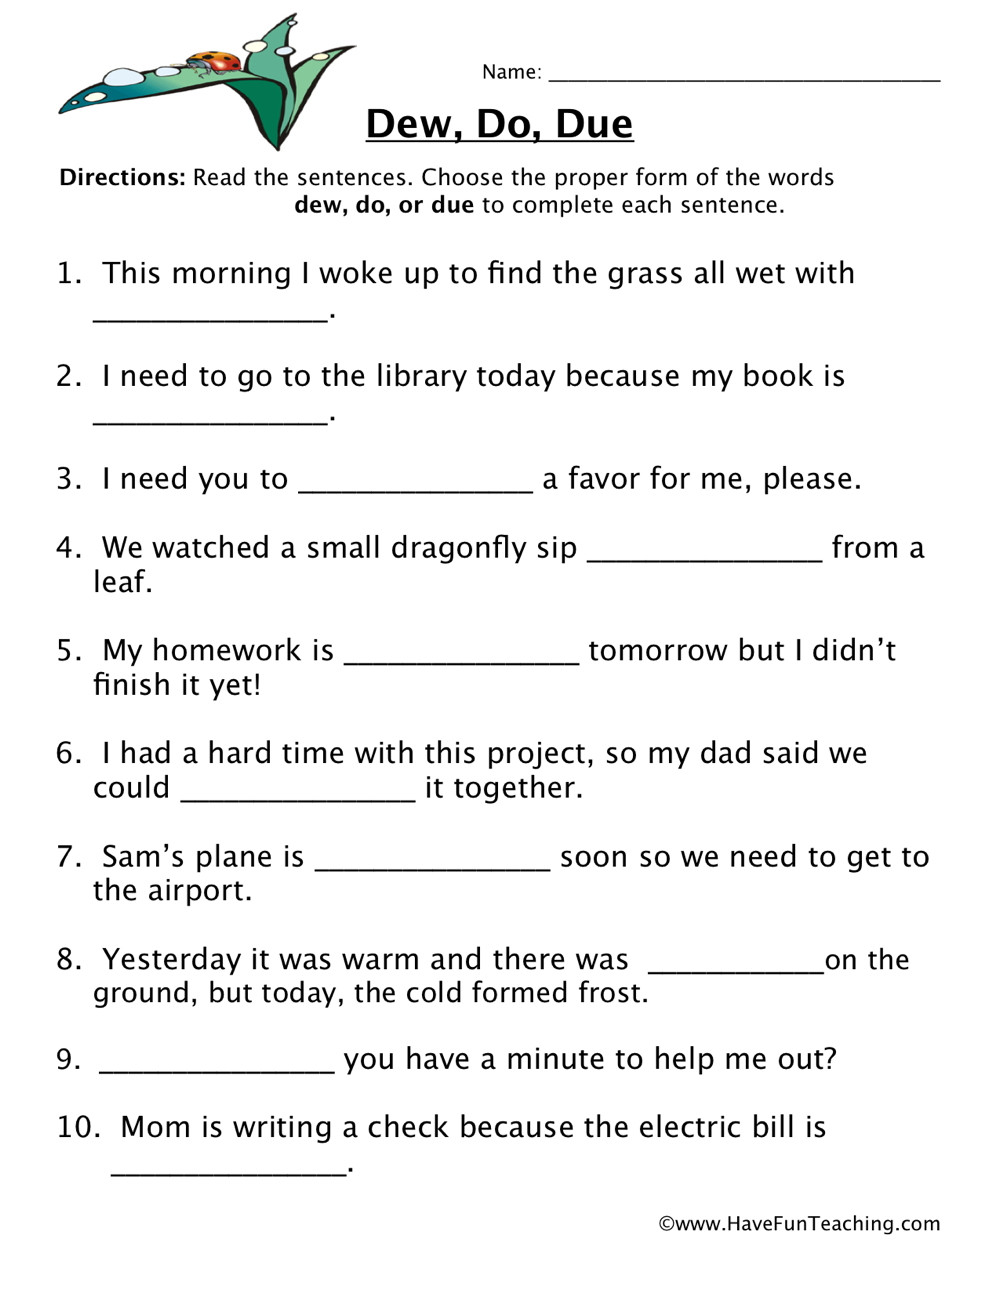 Free Printable Homophone Worksheets Homophones Worksheet Ks2